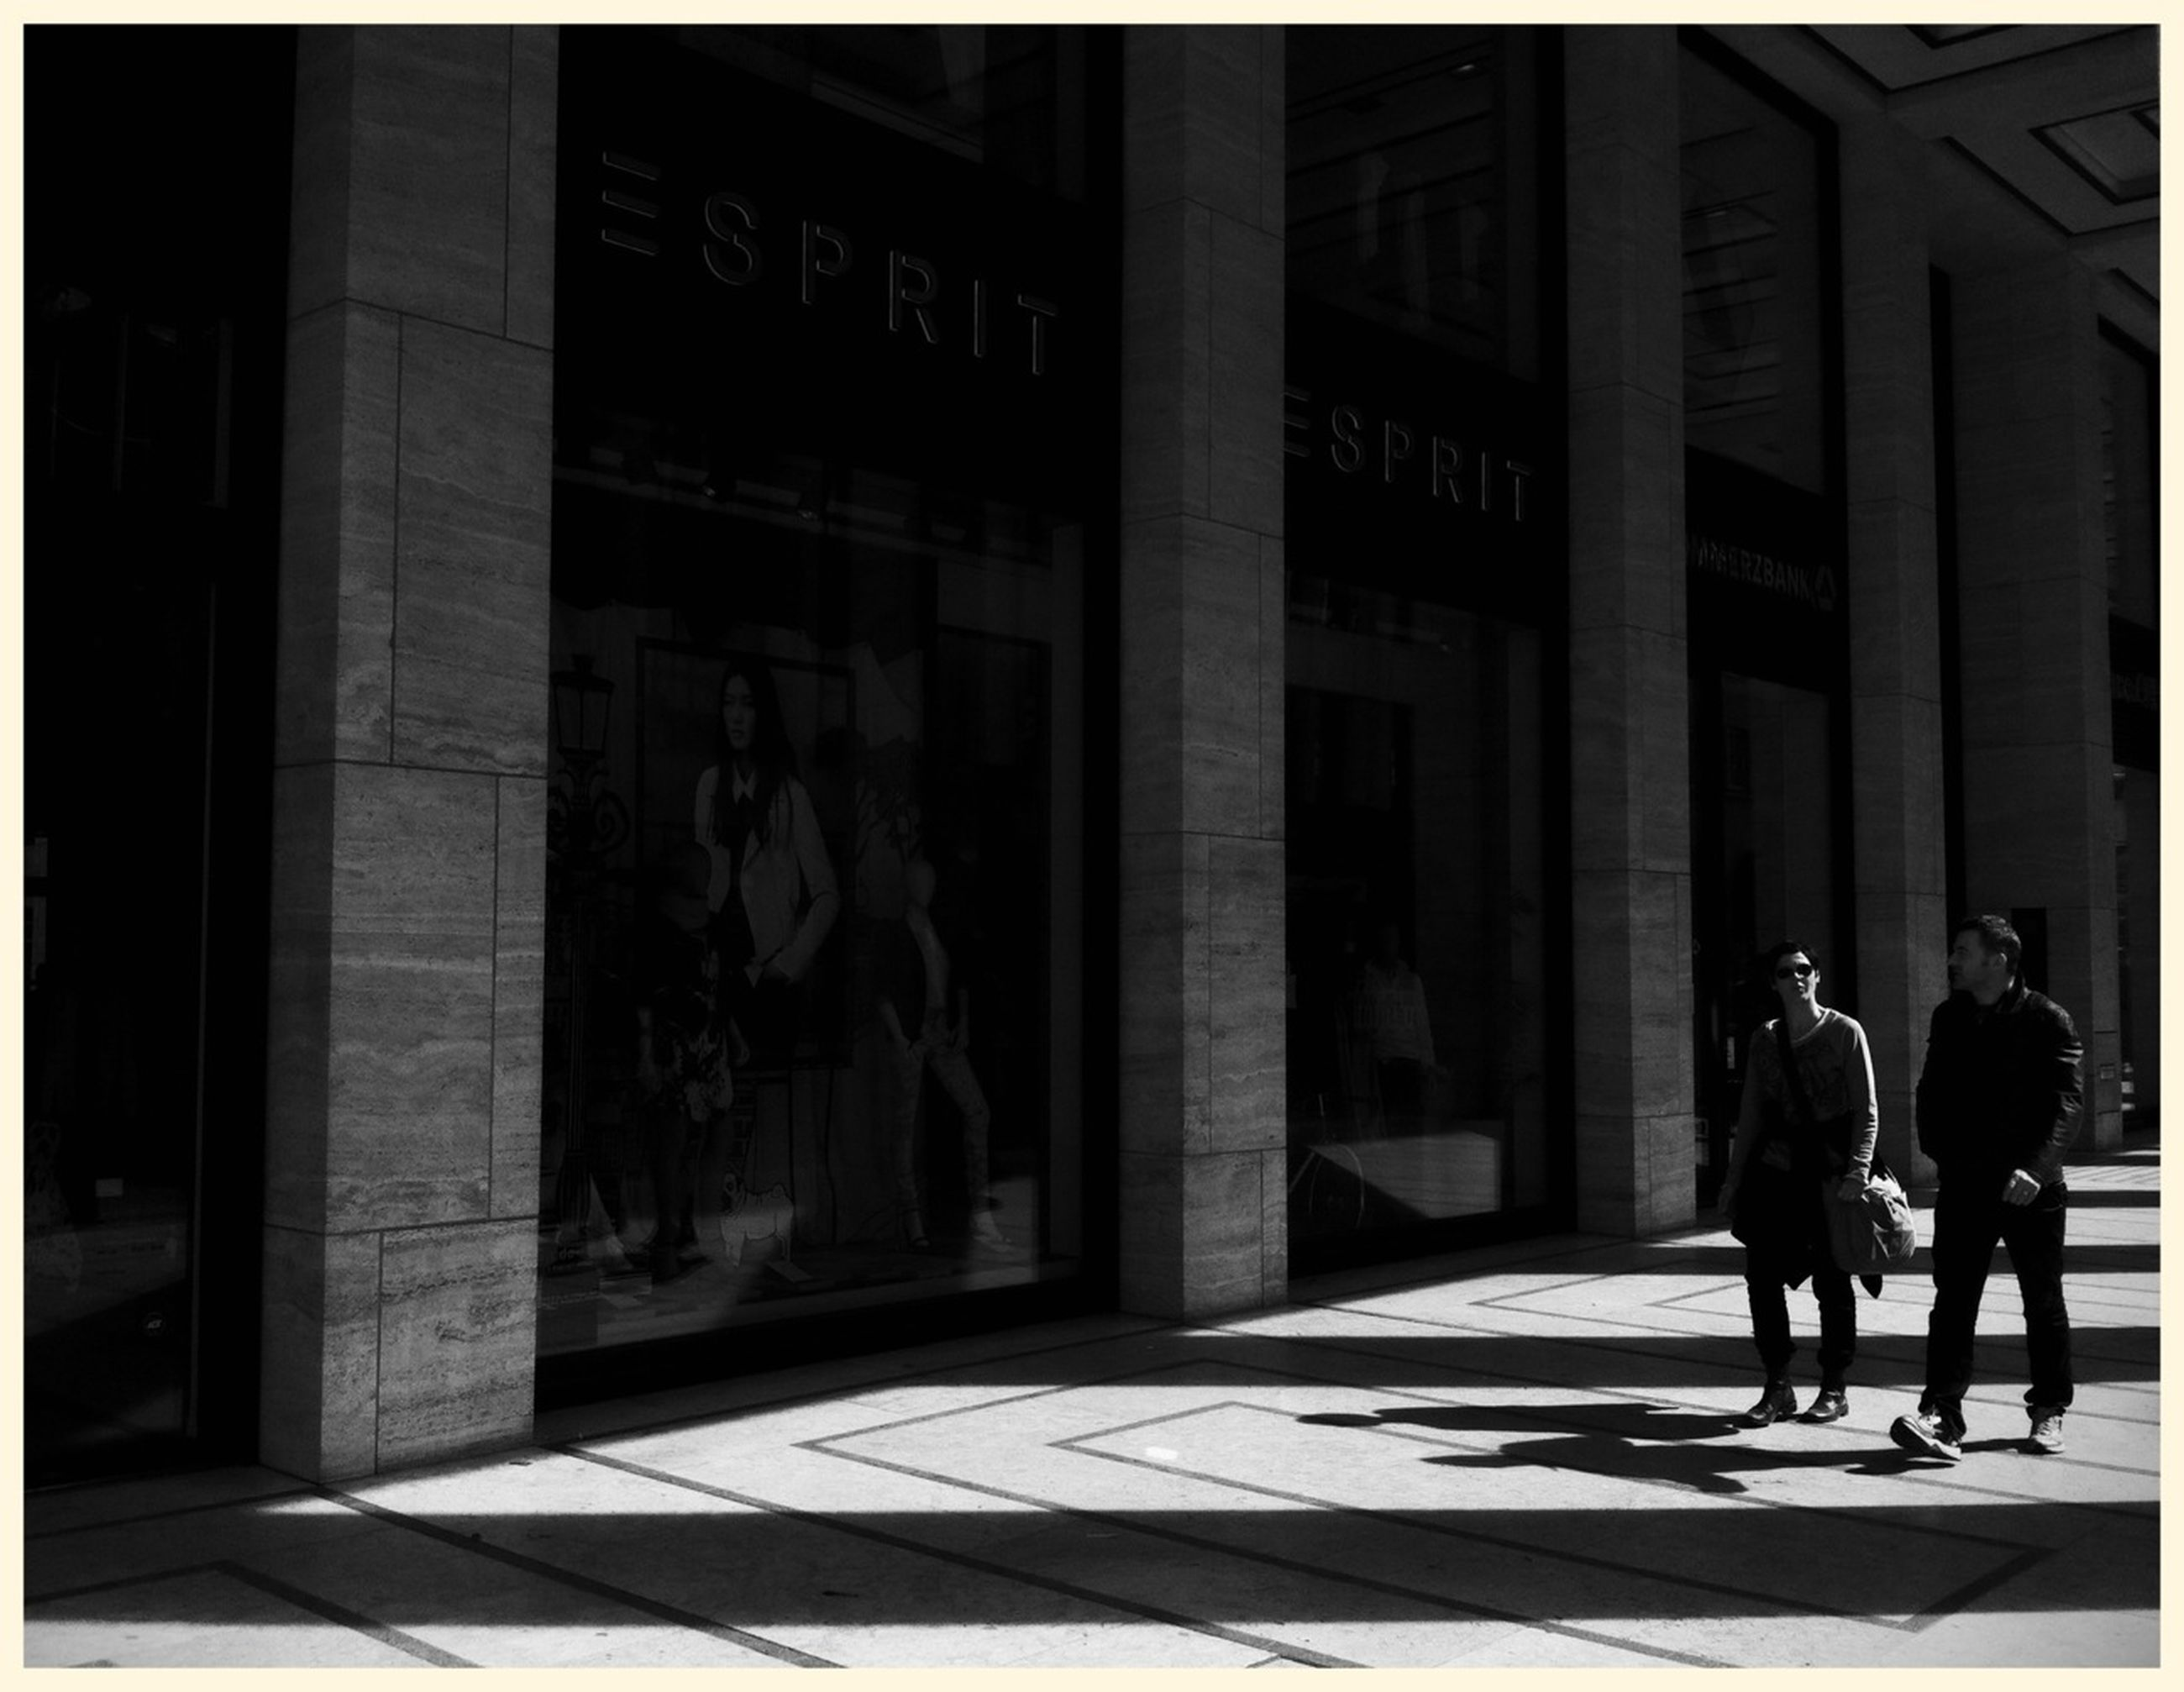 architecture, built structure, building exterior, city, walking, men, street, building, city life, sidewalk, full length, person, shadow, lifestyles, entrance, day, sunlight, outdoors